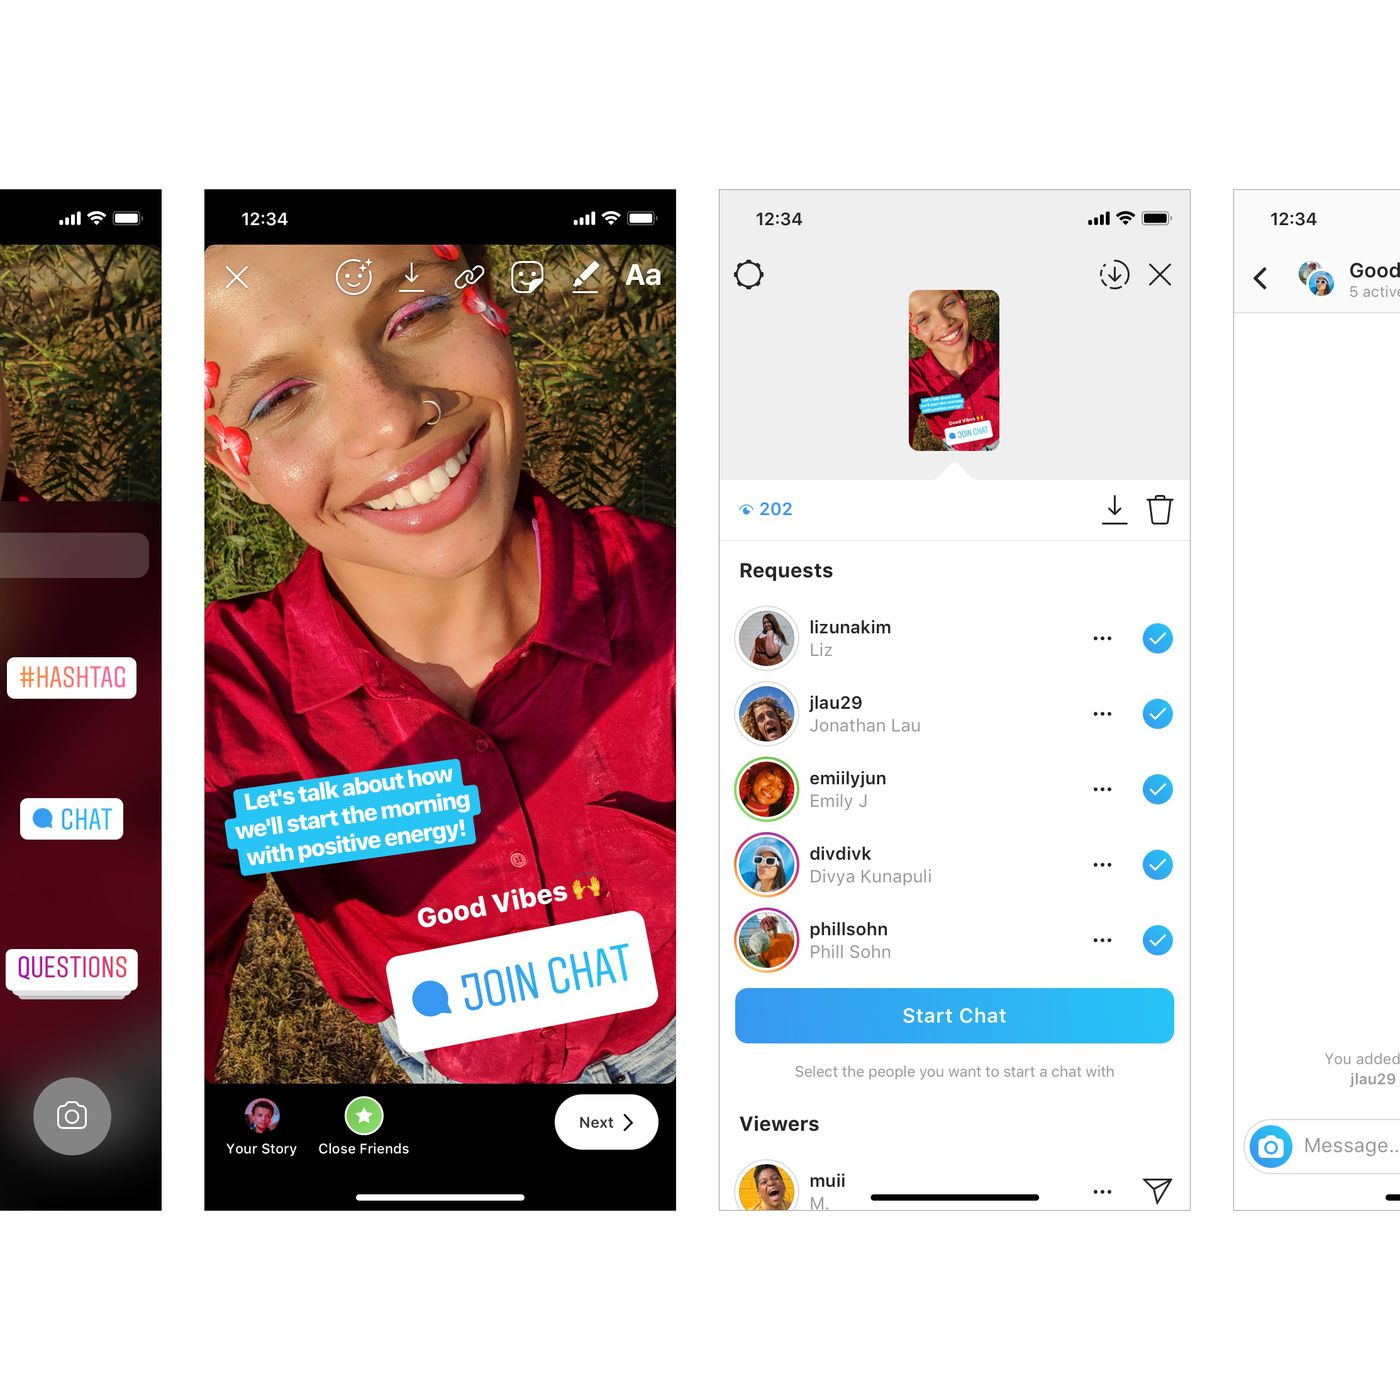 Instagram's new Stories sticker lets you ask your followers to join a new group  chat - The Verge